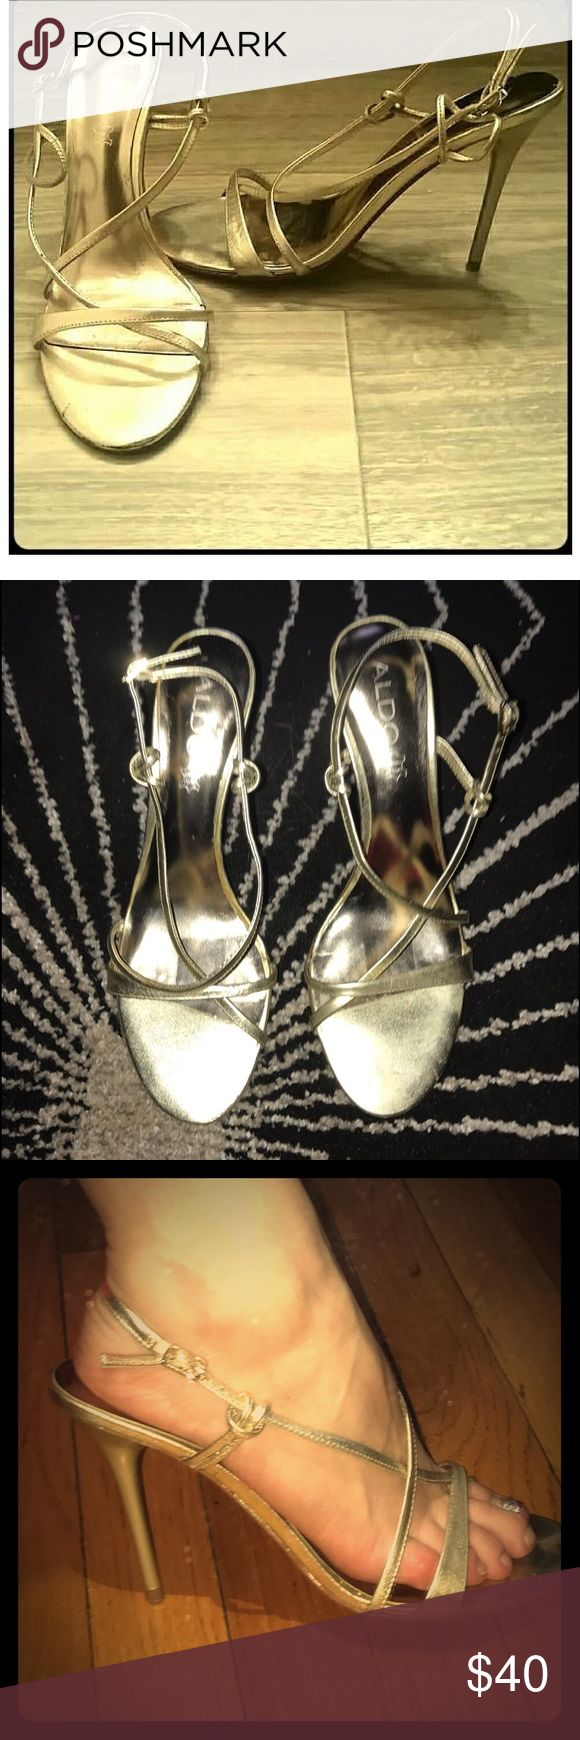 """✨Aldo, Formal Gold Strappy Sandal, 4"""" Pumps💫⭐️🥂 ALDO, Beautiful, Metallic Gold, Formal Stappy Sandal Pumps. Gently Worn, Size 8, Ready for a New Occasion🌟💛🥂🥂💥🔥 Aldo Shoes Heels"""